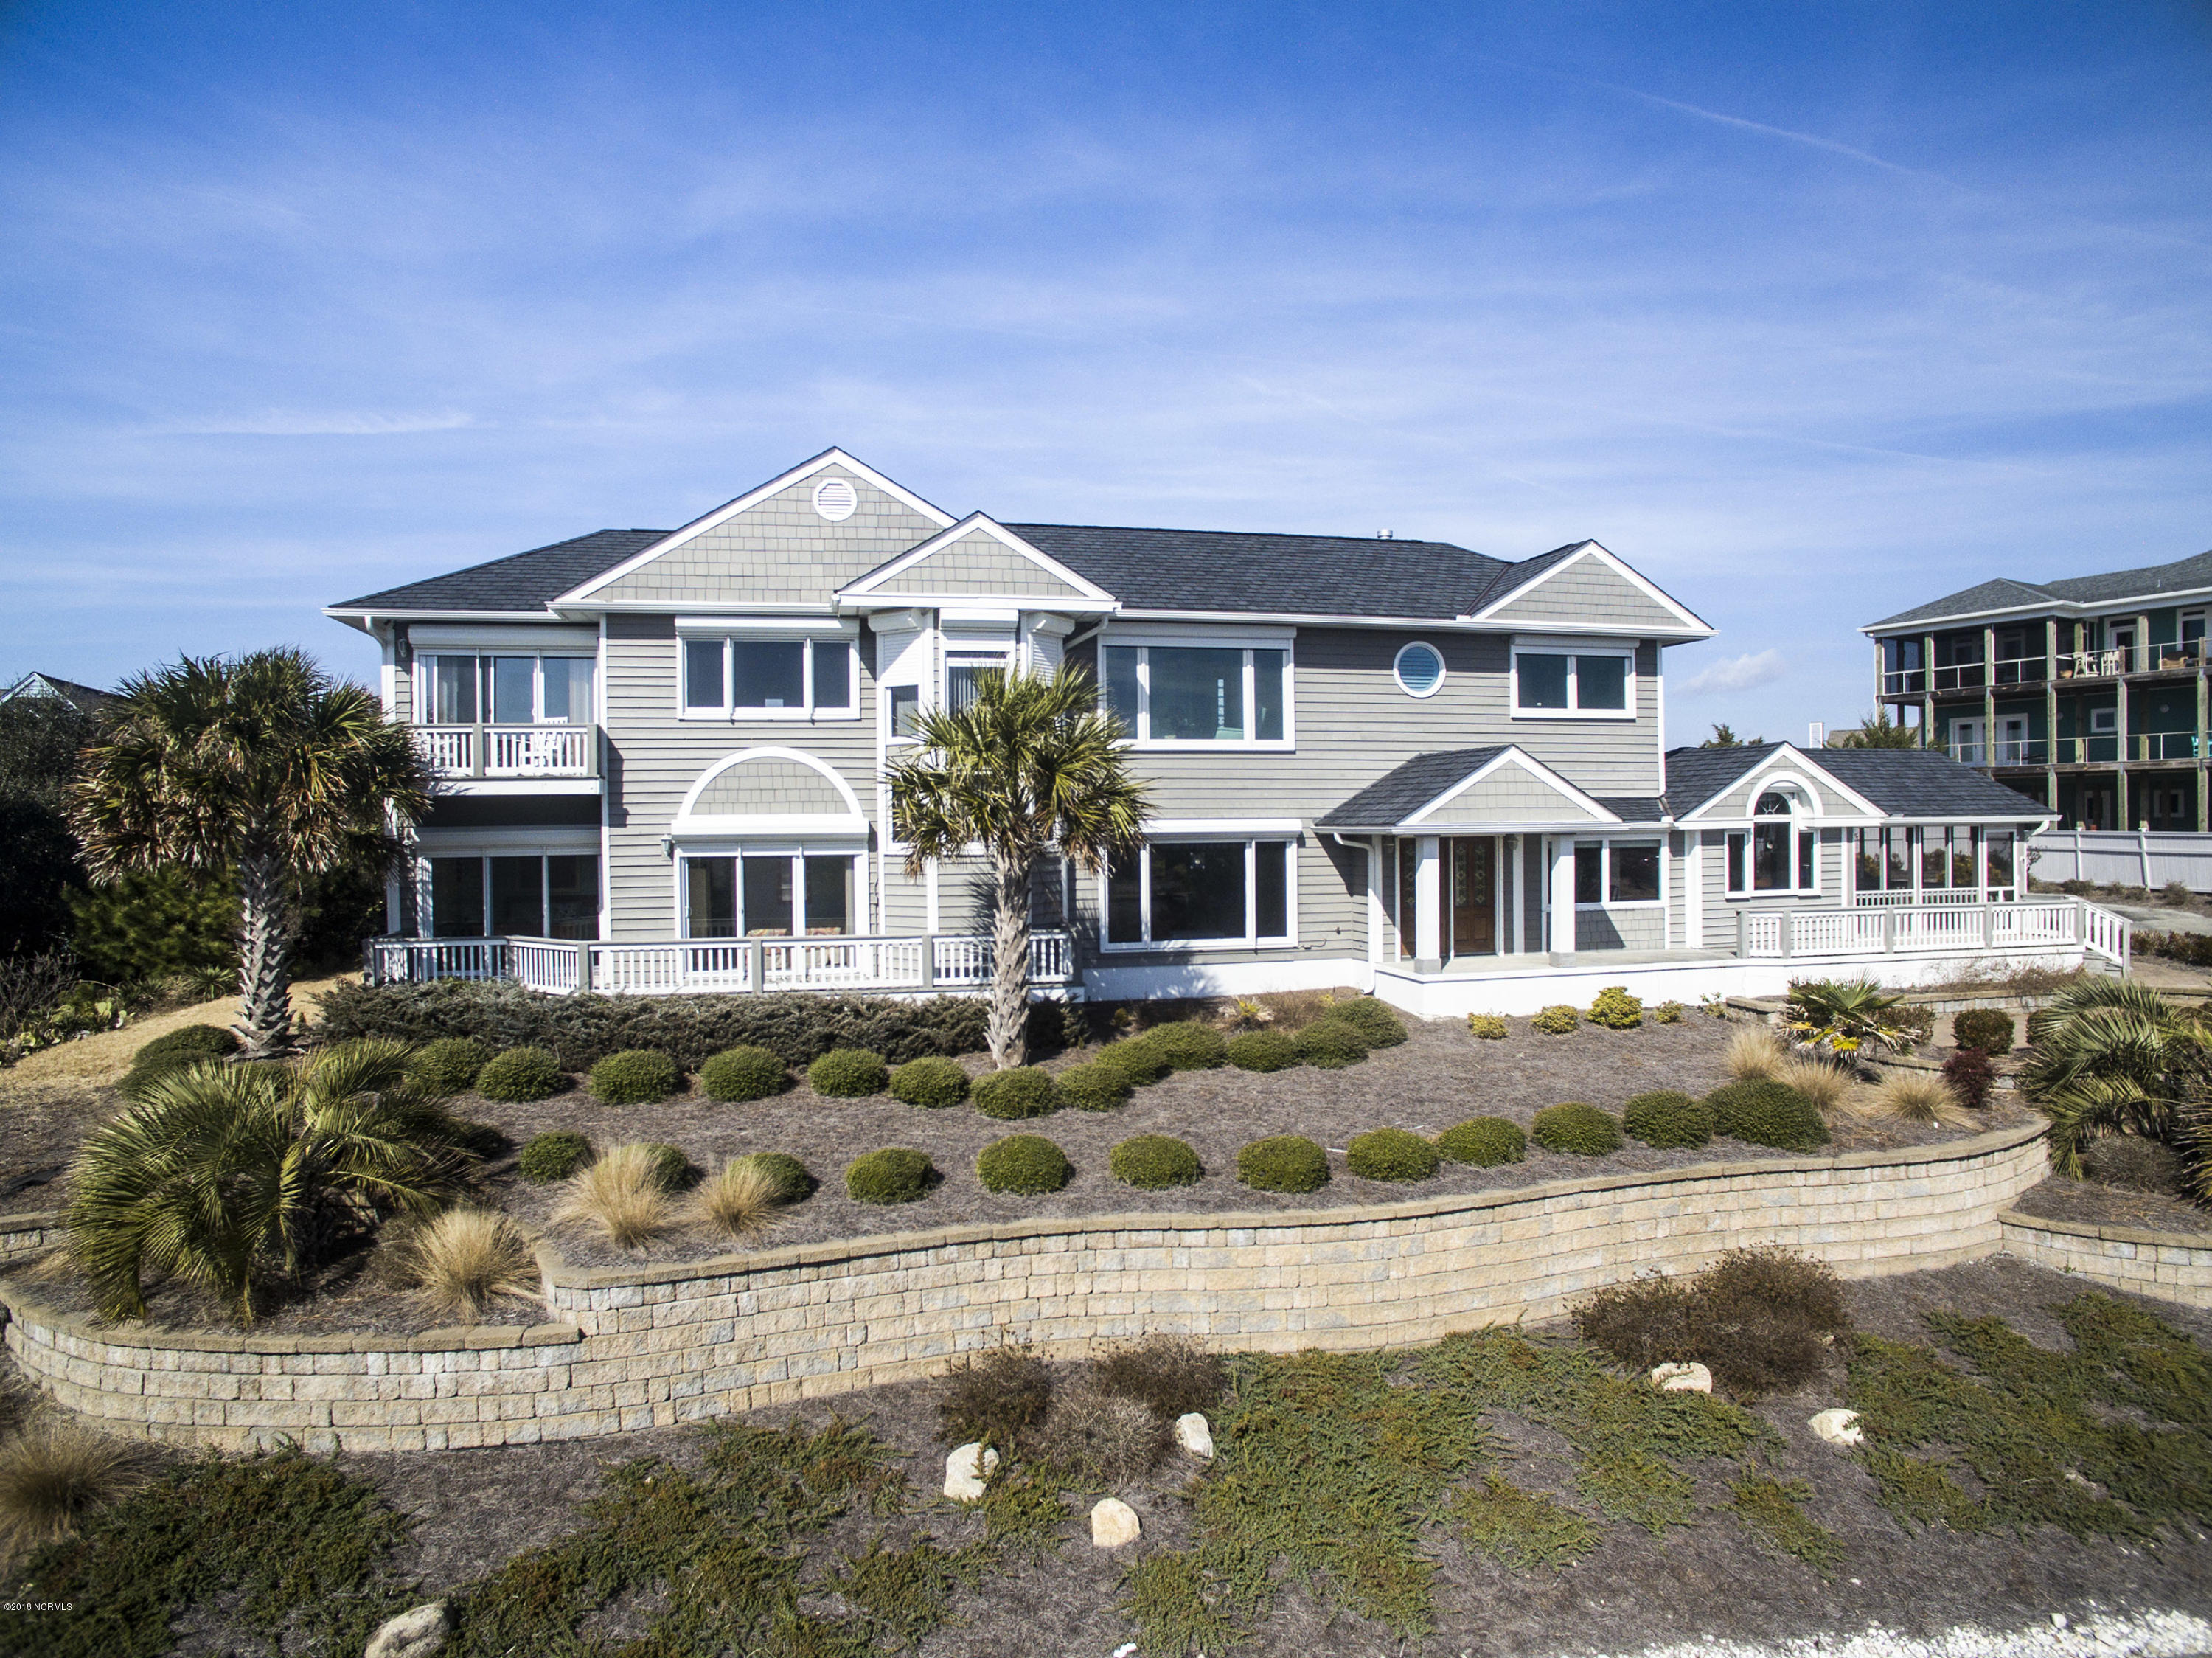 10104 Seabreeze Drive, Emerald Isle, North Carolina, 4 Bedrooms Bedrooms, 8 Rooms Rooms,4 BathroomsBathrooms,Single family residence,For sale,Seabreeze,100101564